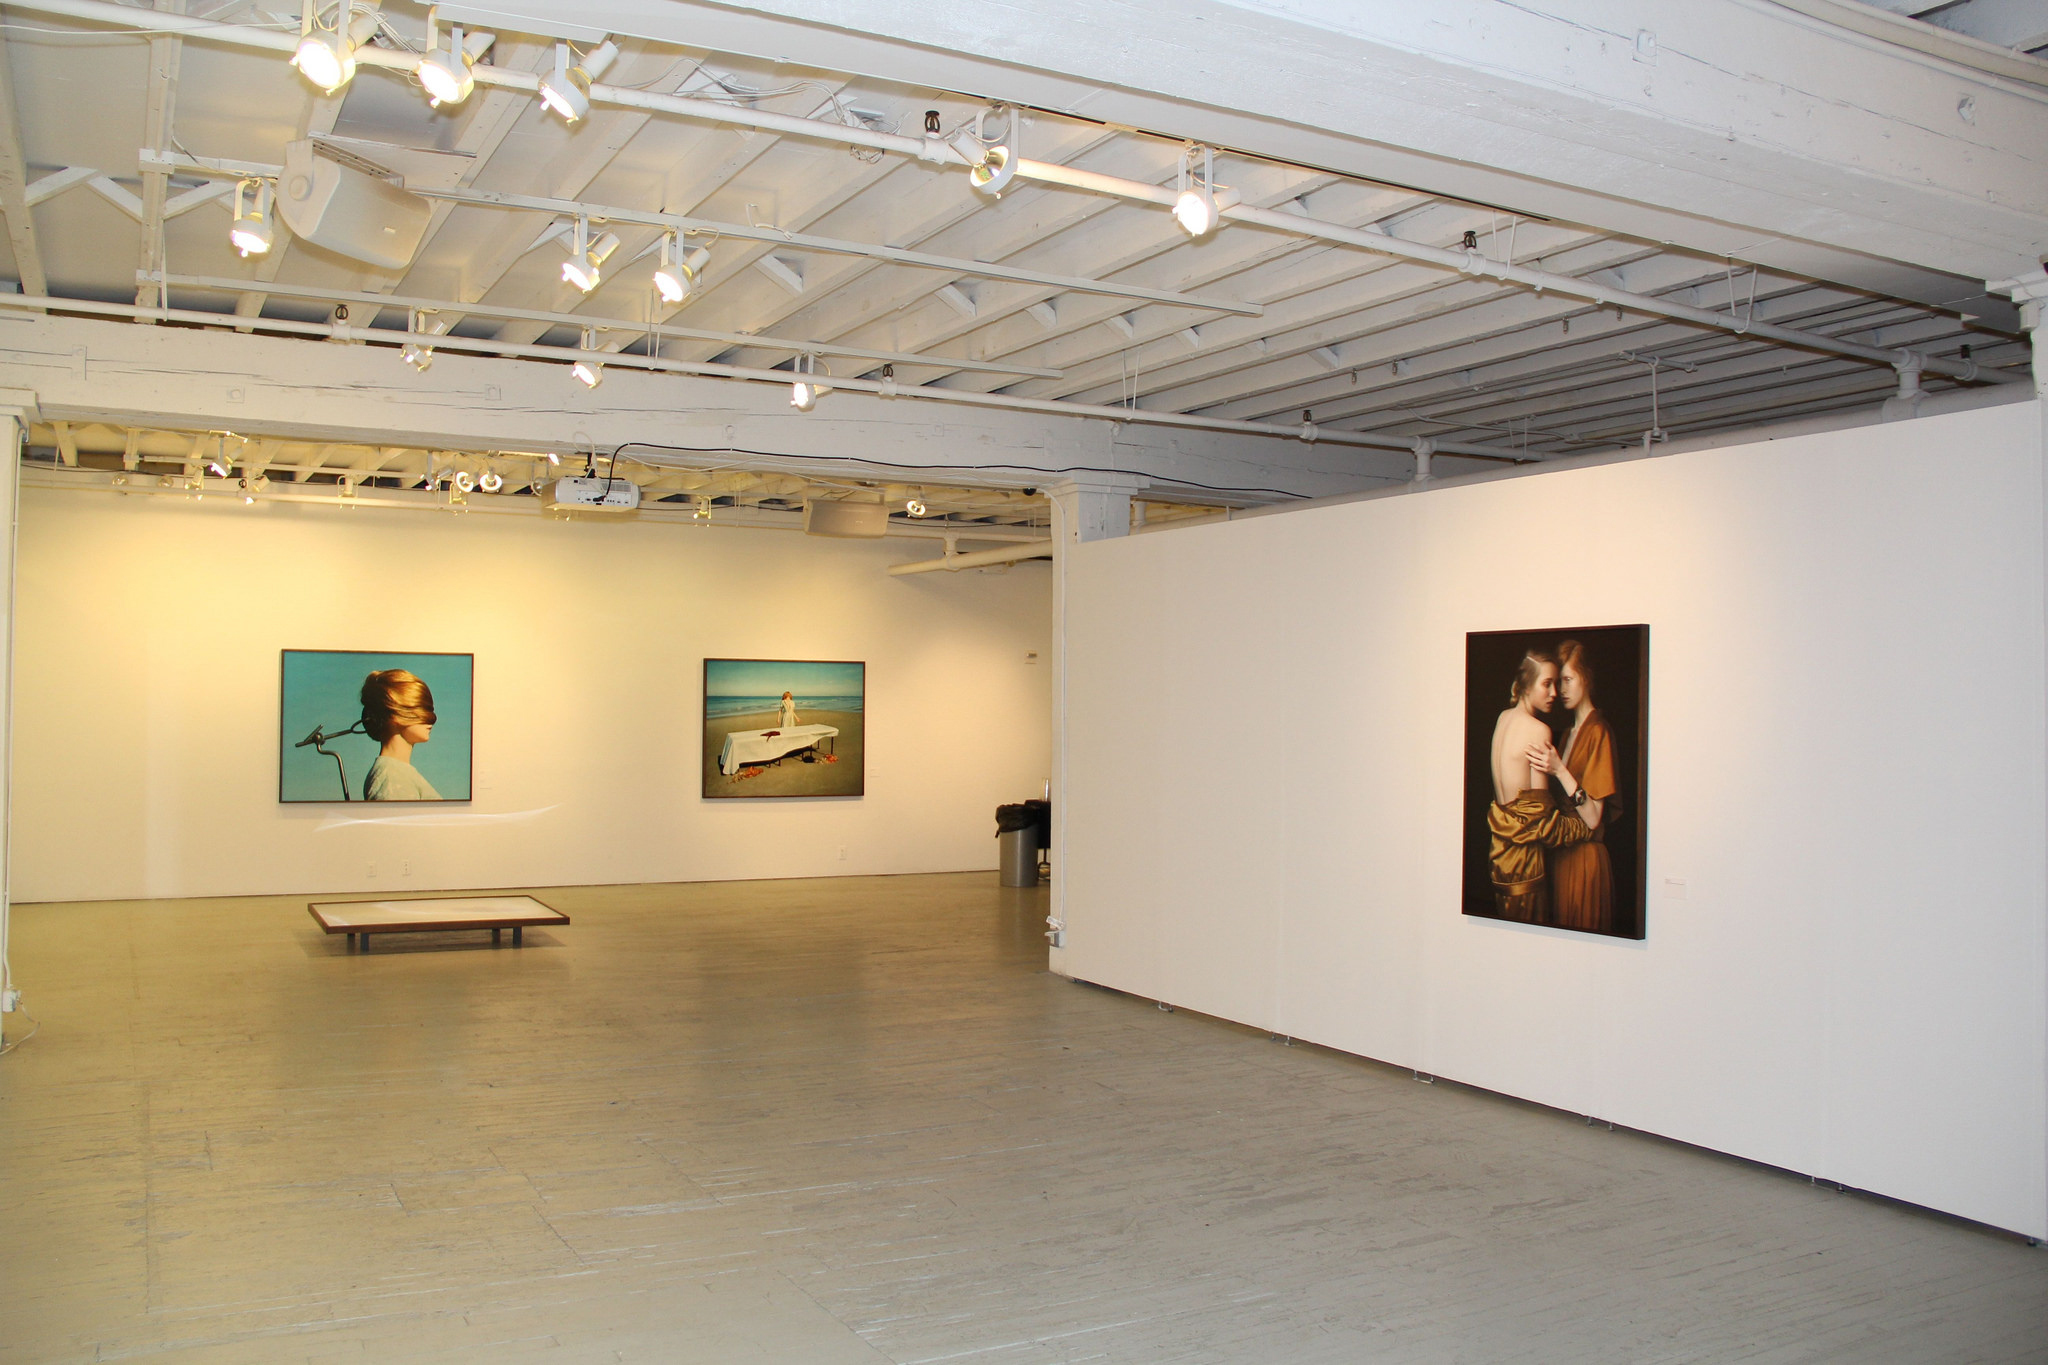 Best photography galleries in NYC from Fifth Avenue to The Bowery